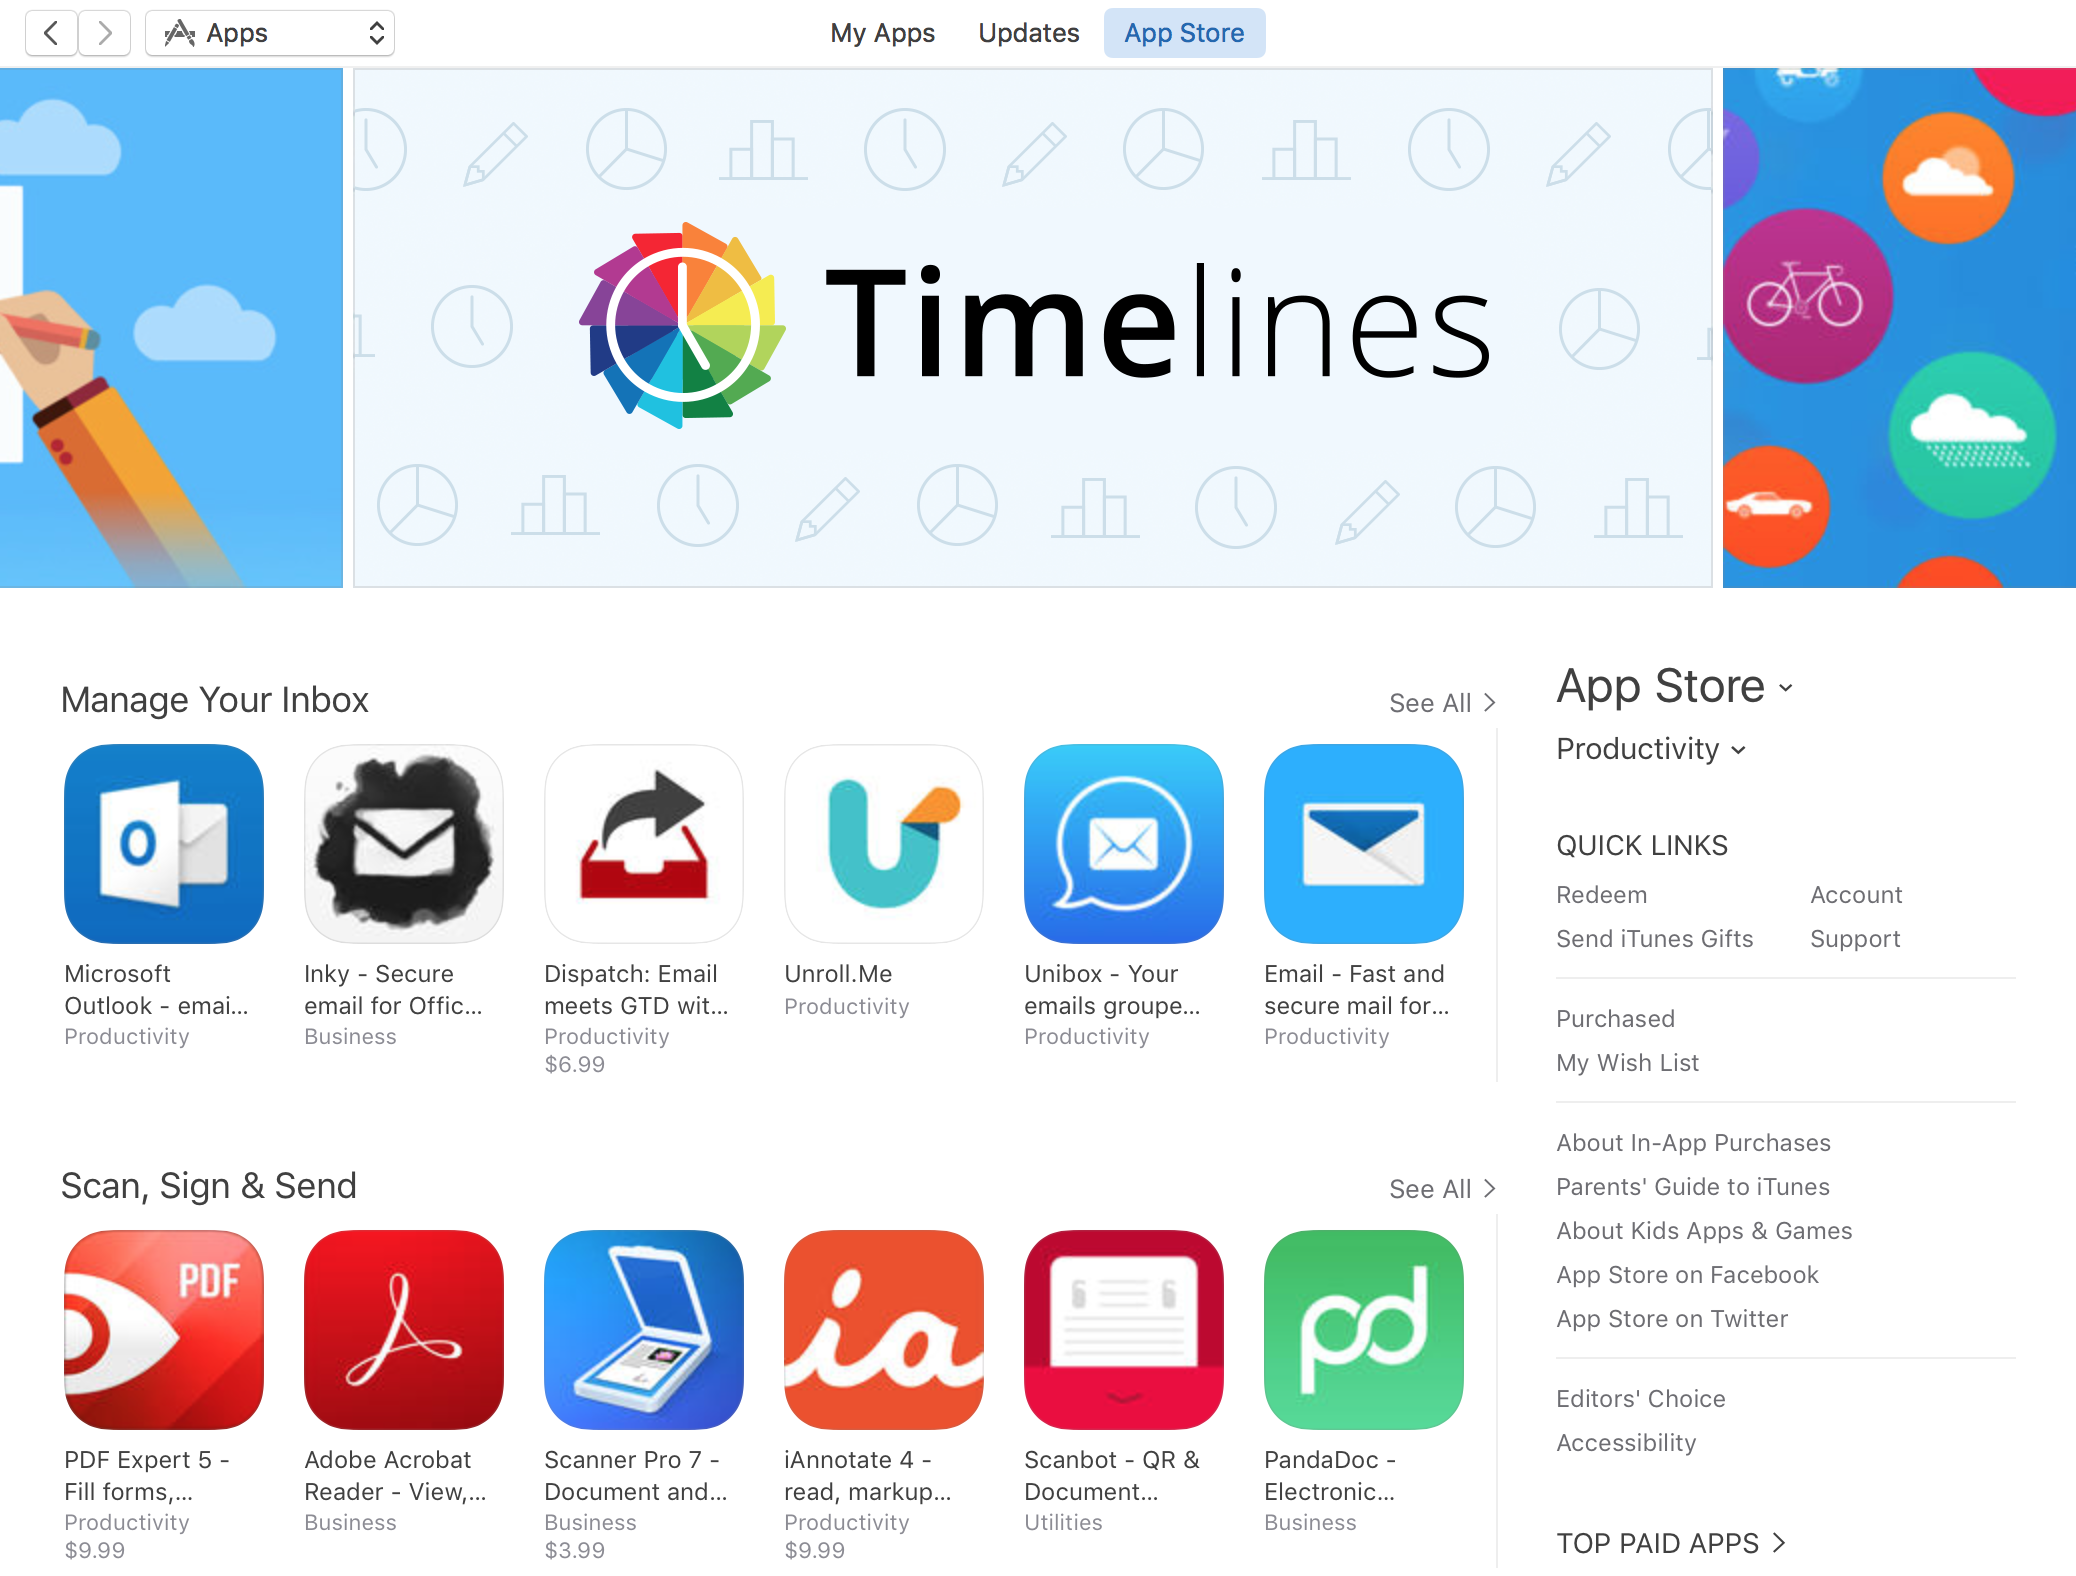 Timelines featured on the App Store, Productivity category